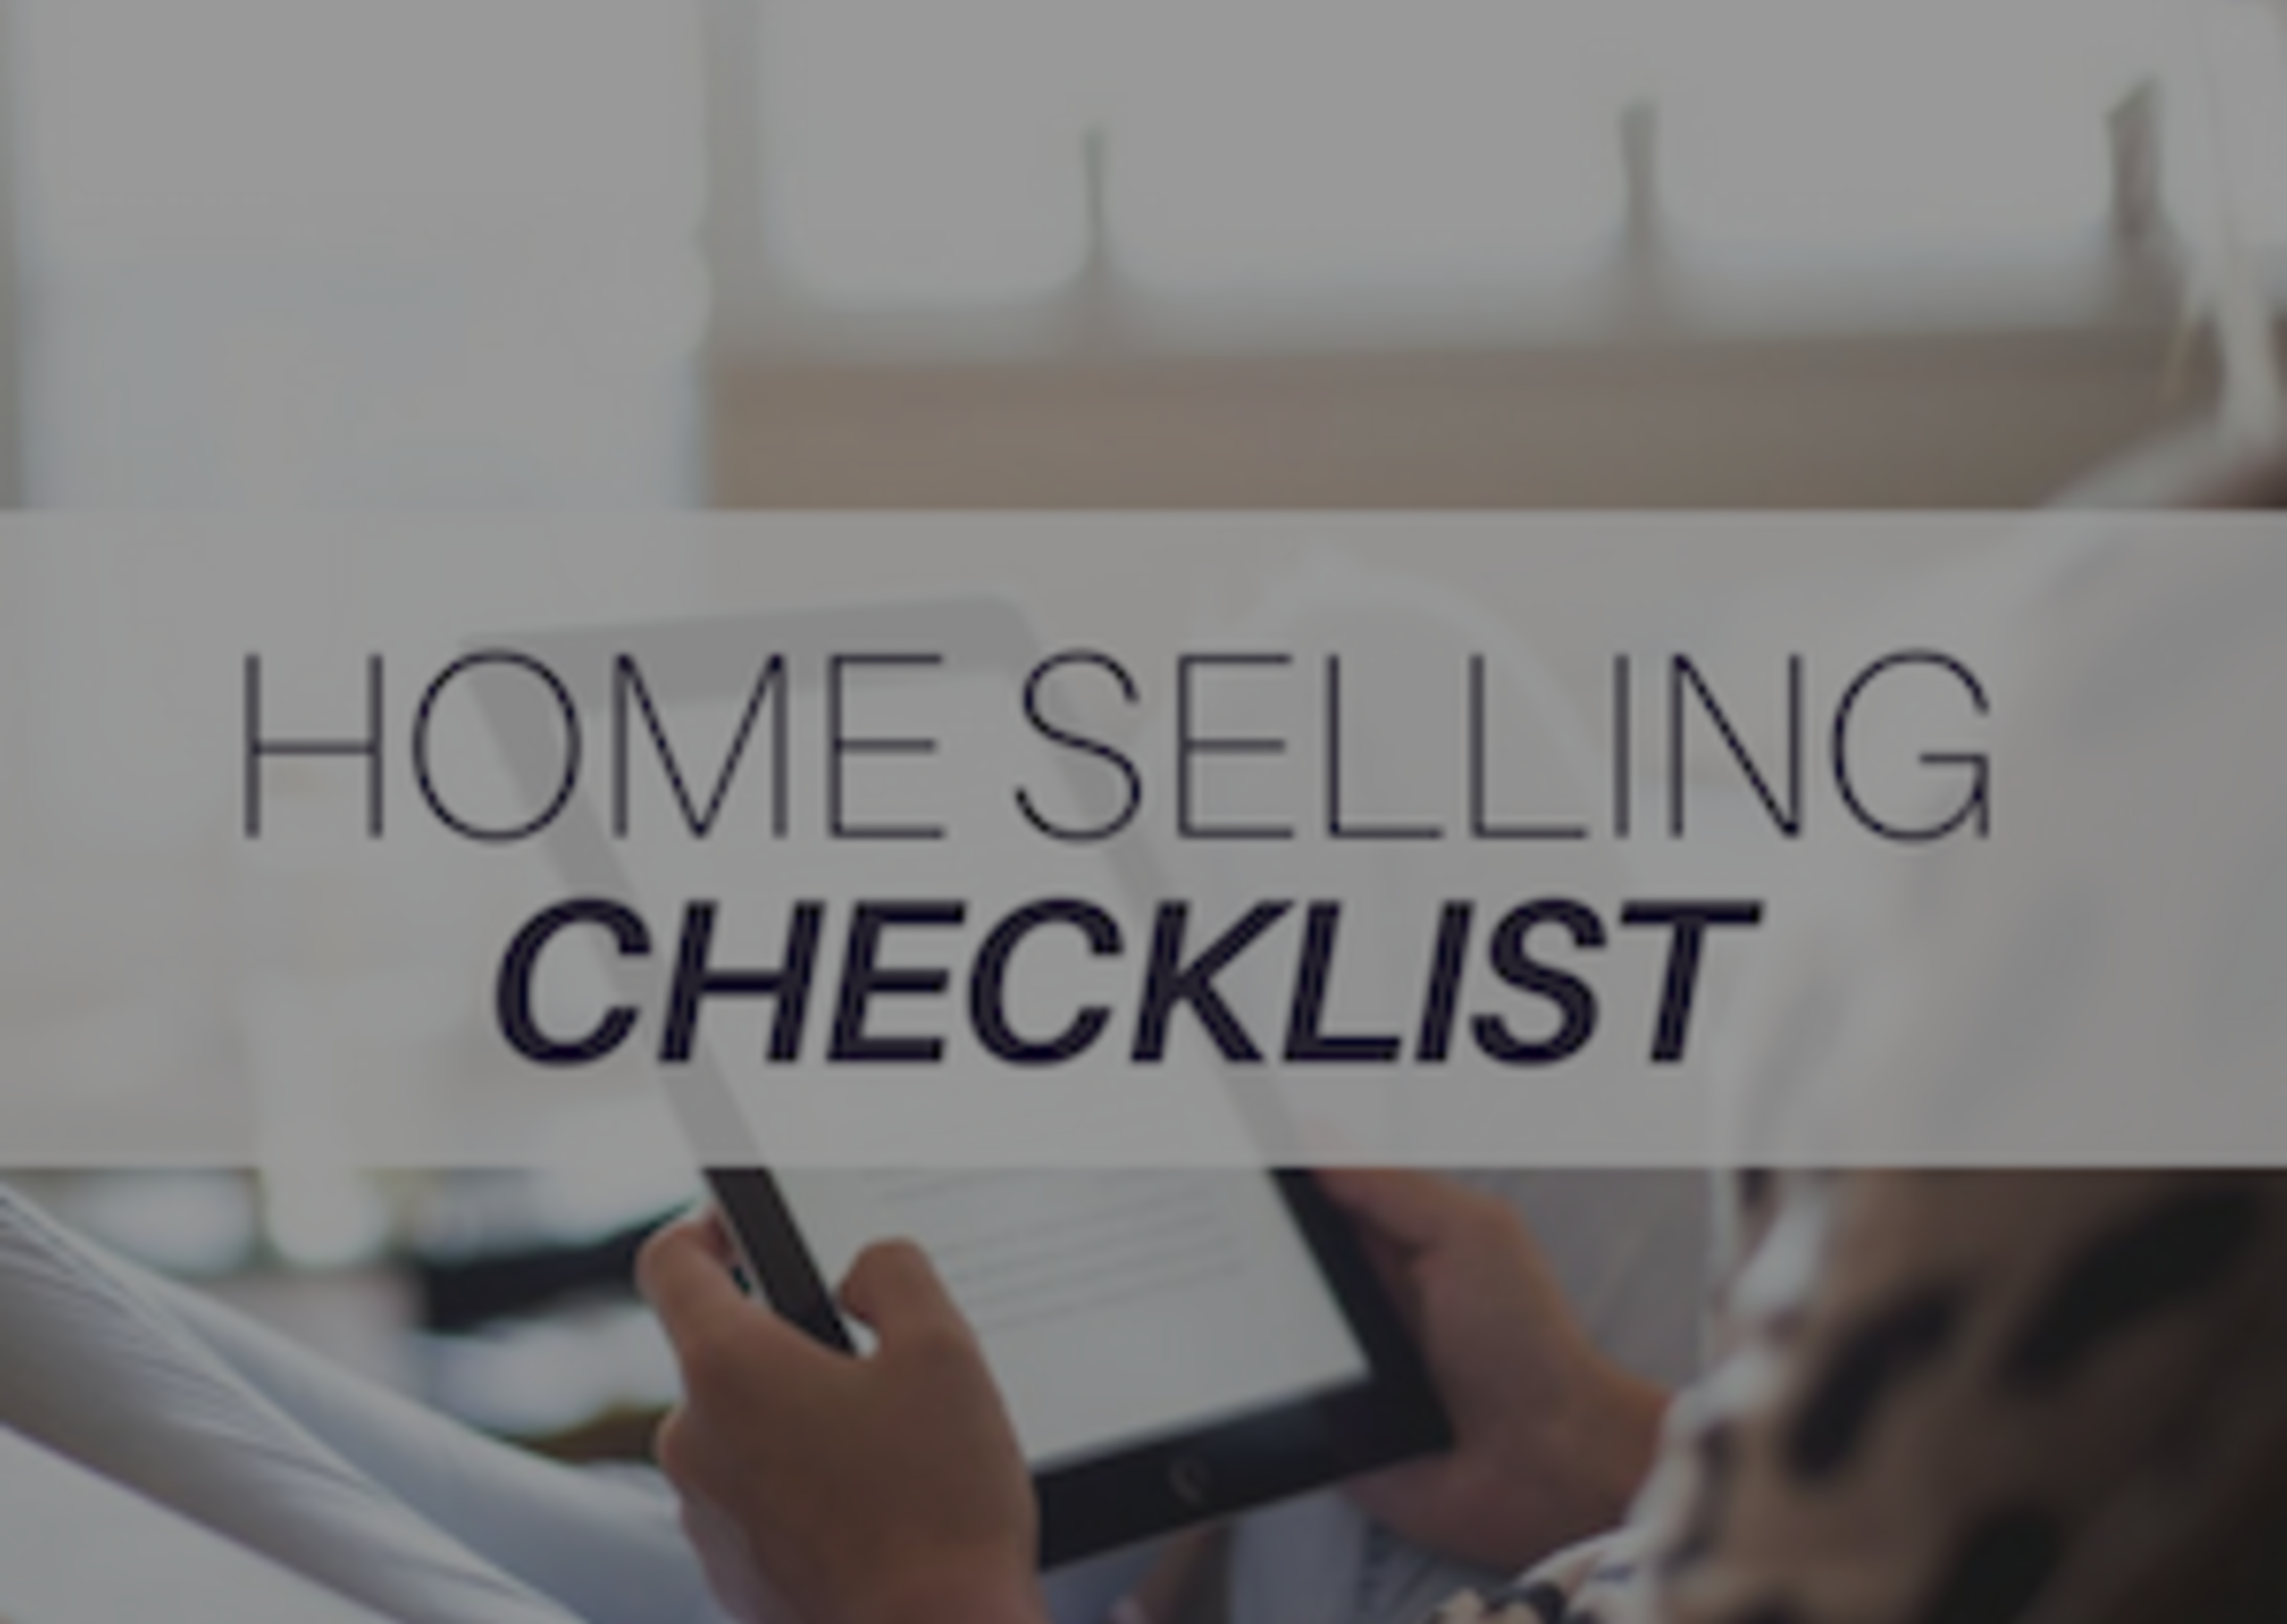 Home Selling Checklist: ​6 Easy Things To Do Before You List Your Home For Sale